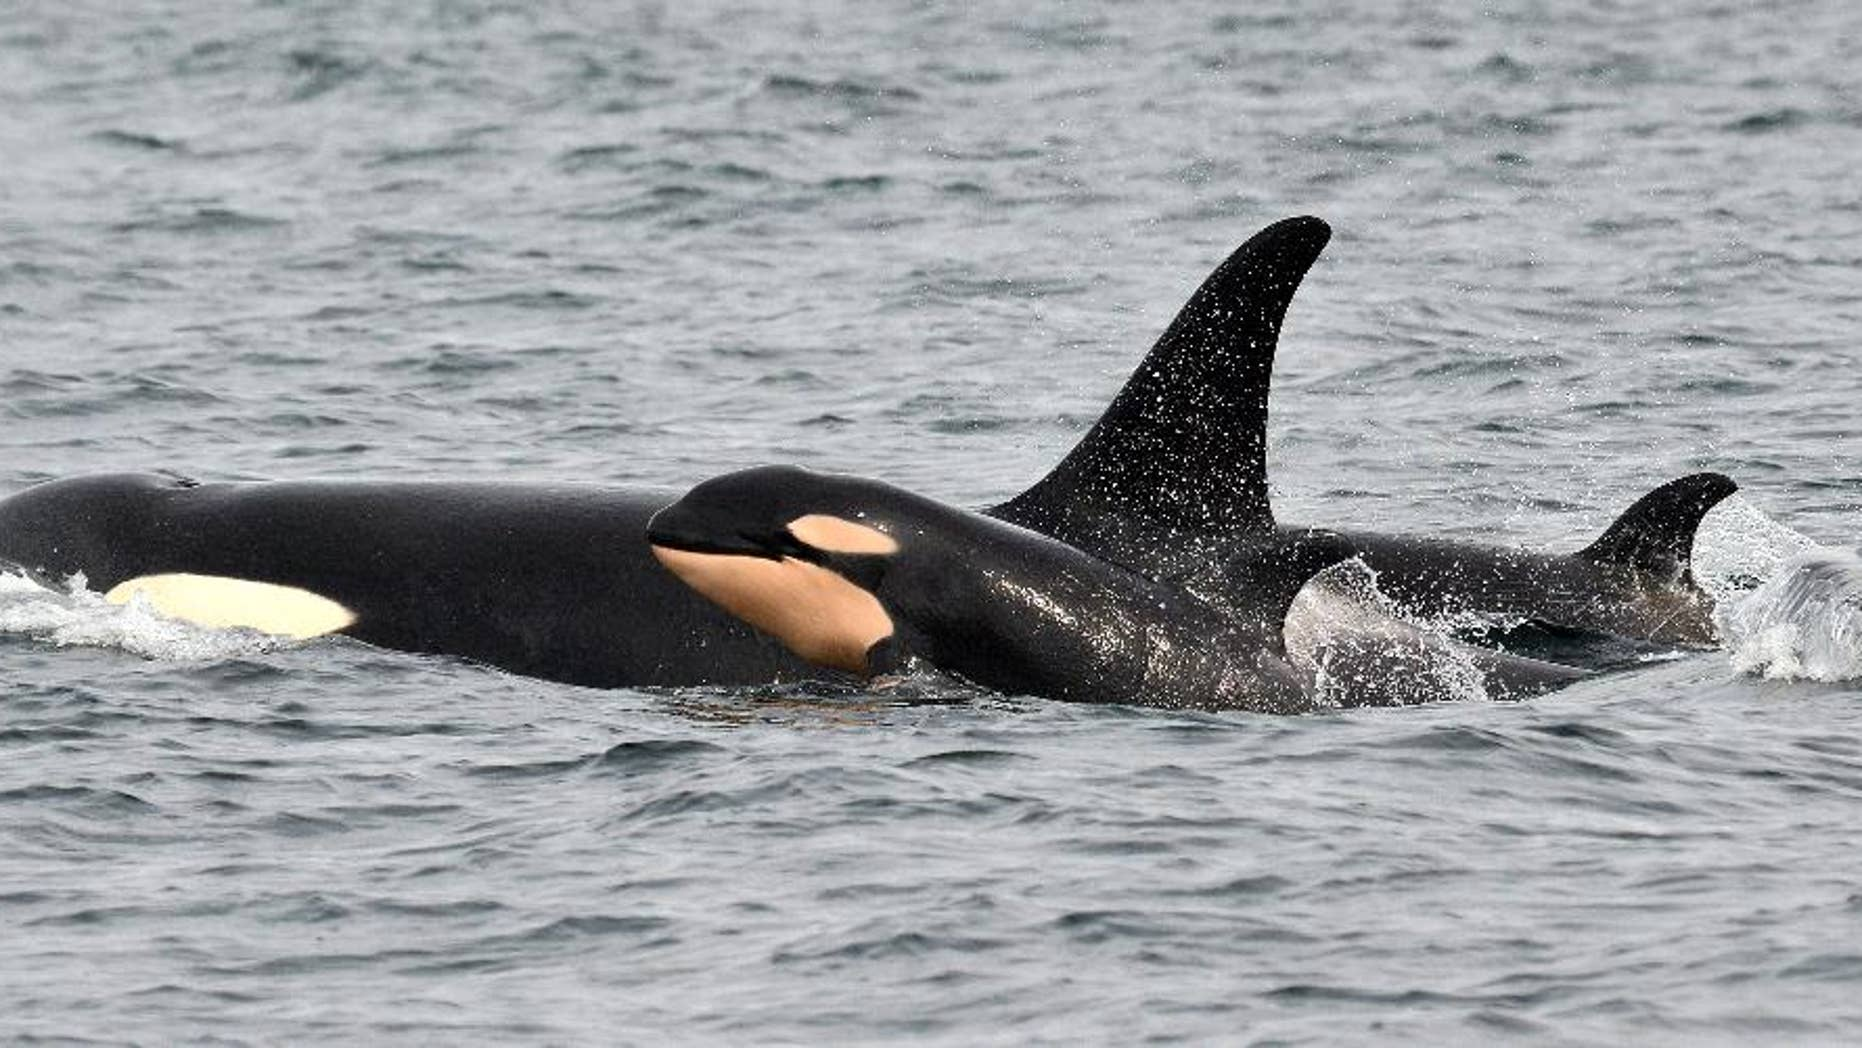 In this photo taken Monday, March 30, 2015, and provided by the Pacific Whale Watch Association, a newborn orca whale swims alongside an adult whale, believed to be the mother, in the Salish Sea waters off Galiano Island, British Columbia. The endangered population of killer whales that spend time in Washington state waters is experiencing a baby boom with the fourth baby orca documented this winter. The newborn was spotted Monday by whale-watching crews and a naturalist in the waters of British Columbia, according to the Pacific Whale Watch Association, which represents 29 whale-watching operators in Washington and British Columbia. The orca was swimming with other members of the J-pod, one of three families of orcas that are protected in Washington and Canada. (AP Photo/Maya's Legacy Whale Watching, Jeanne Hyde)